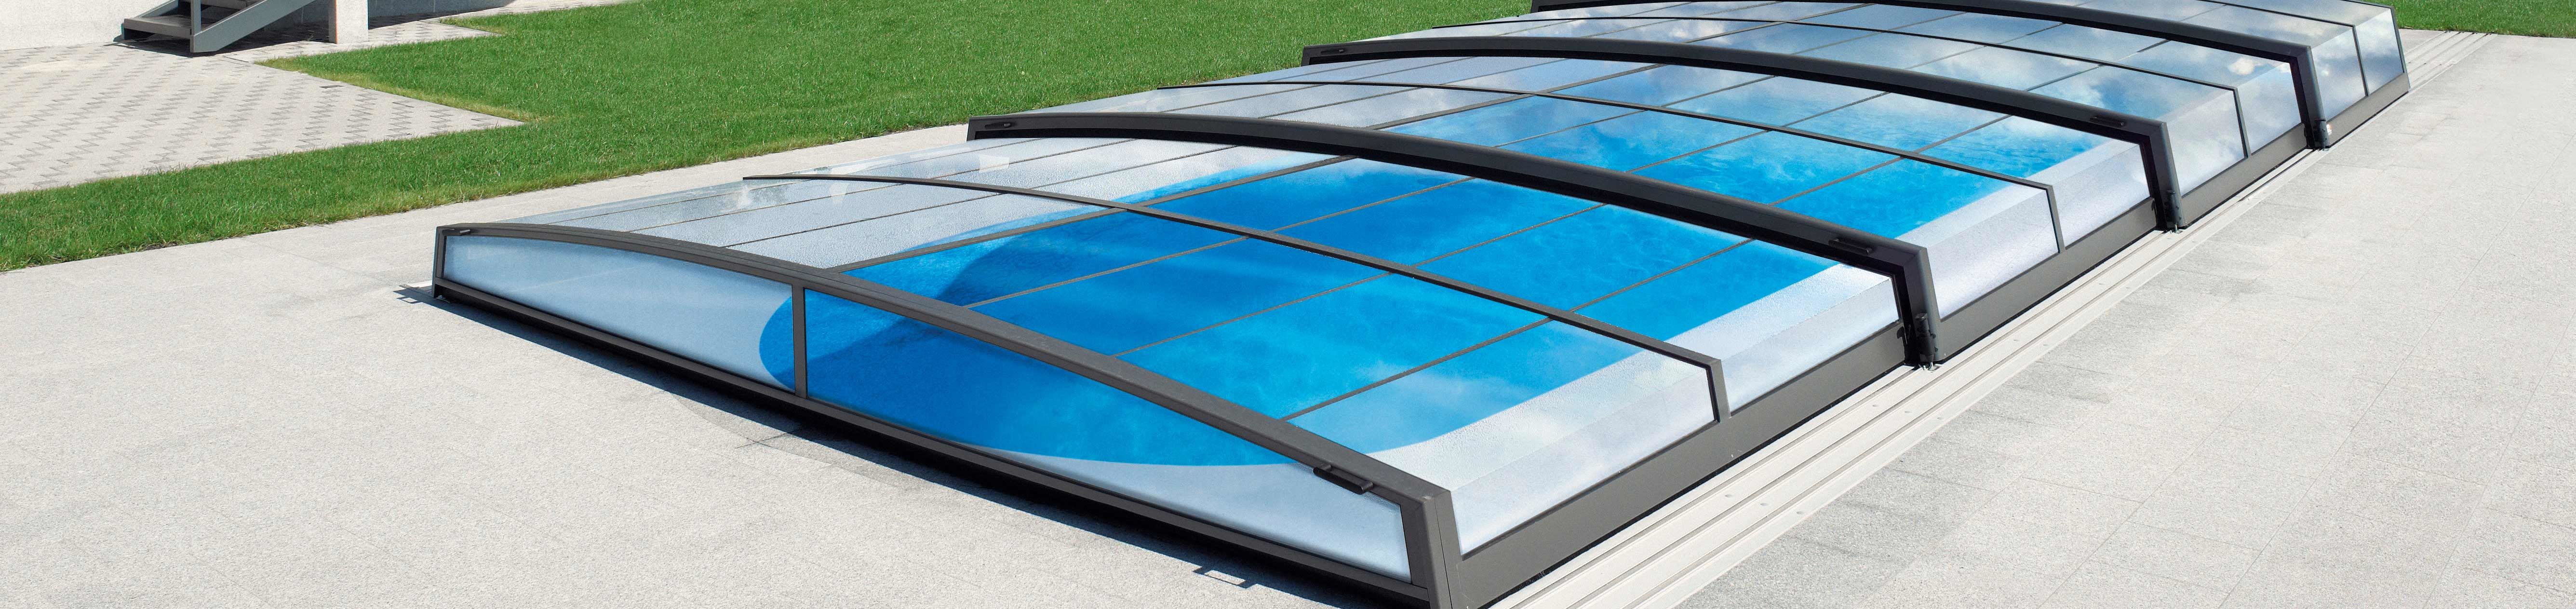 Retractable Swimming Pool Enclosure Corona Sunrooms: retractable swimming pool enclosures